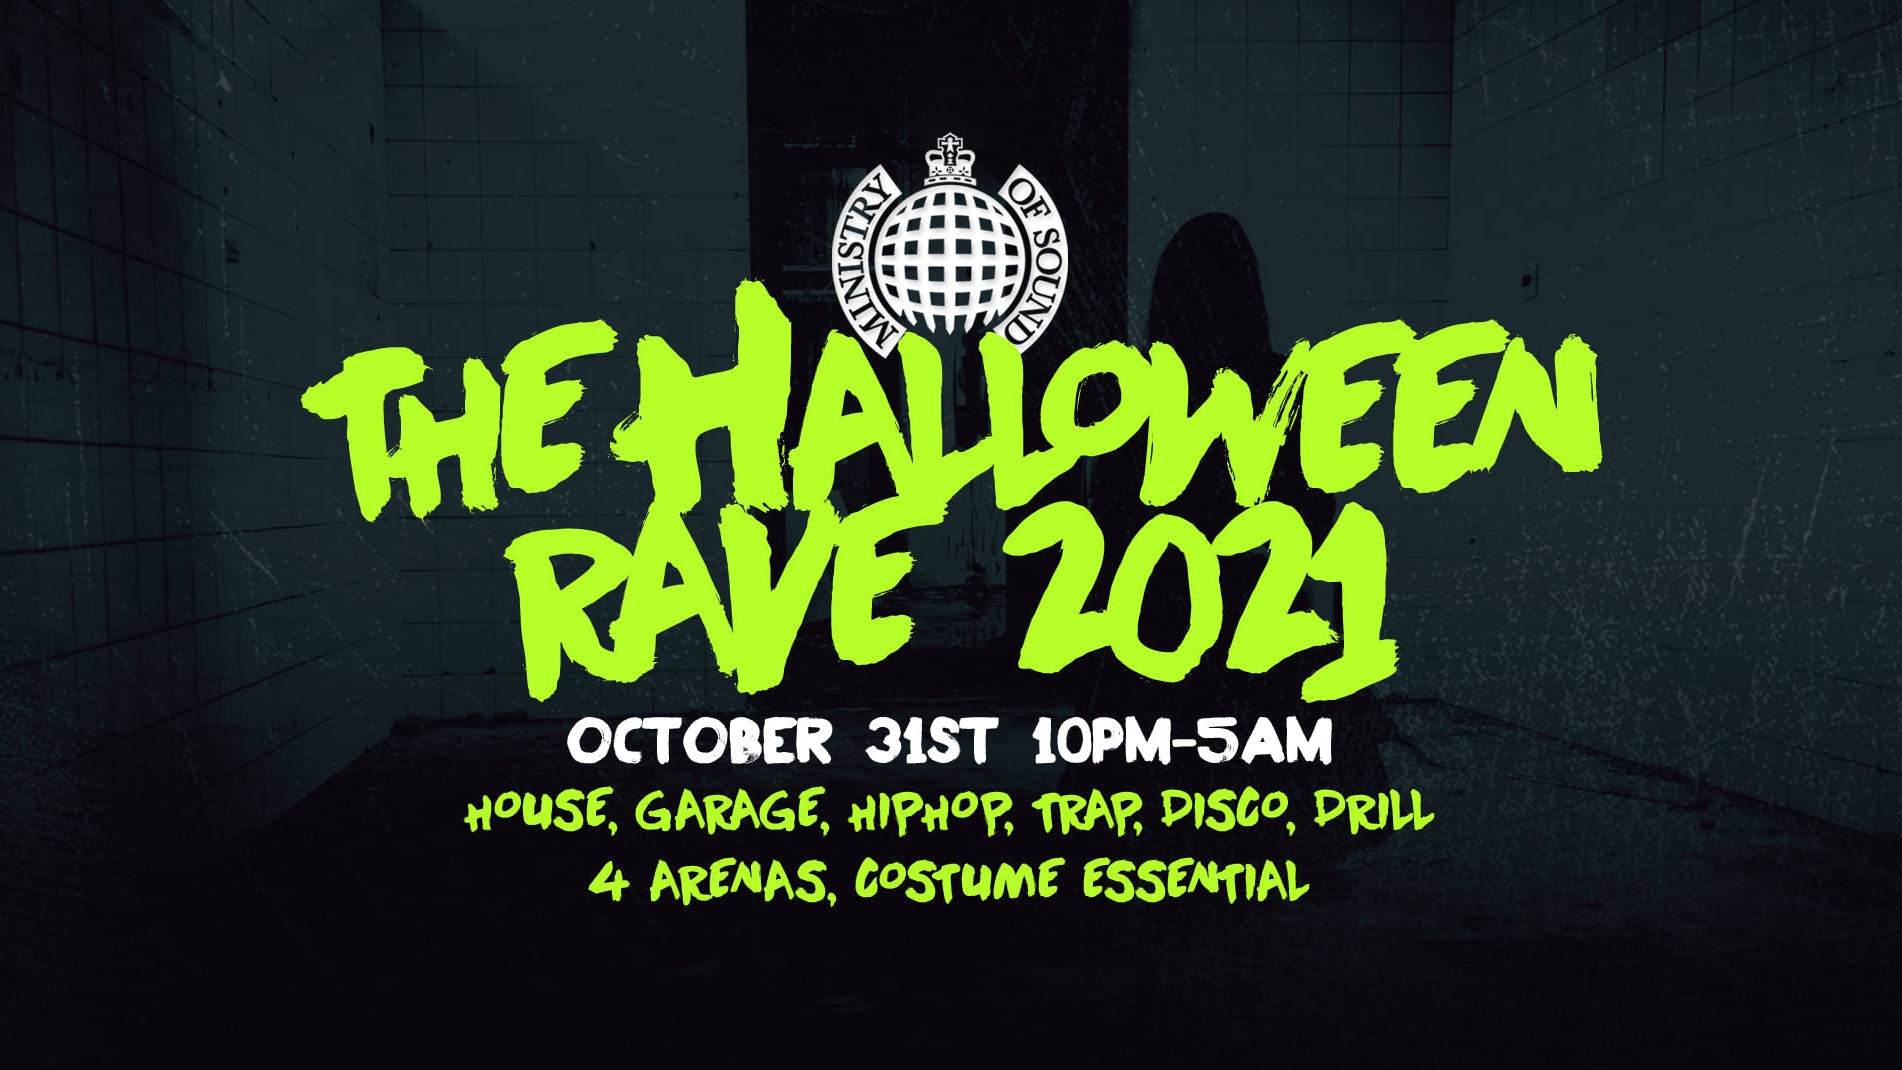 The Halloween Rave 2021  |  Ministry of Sound 👻